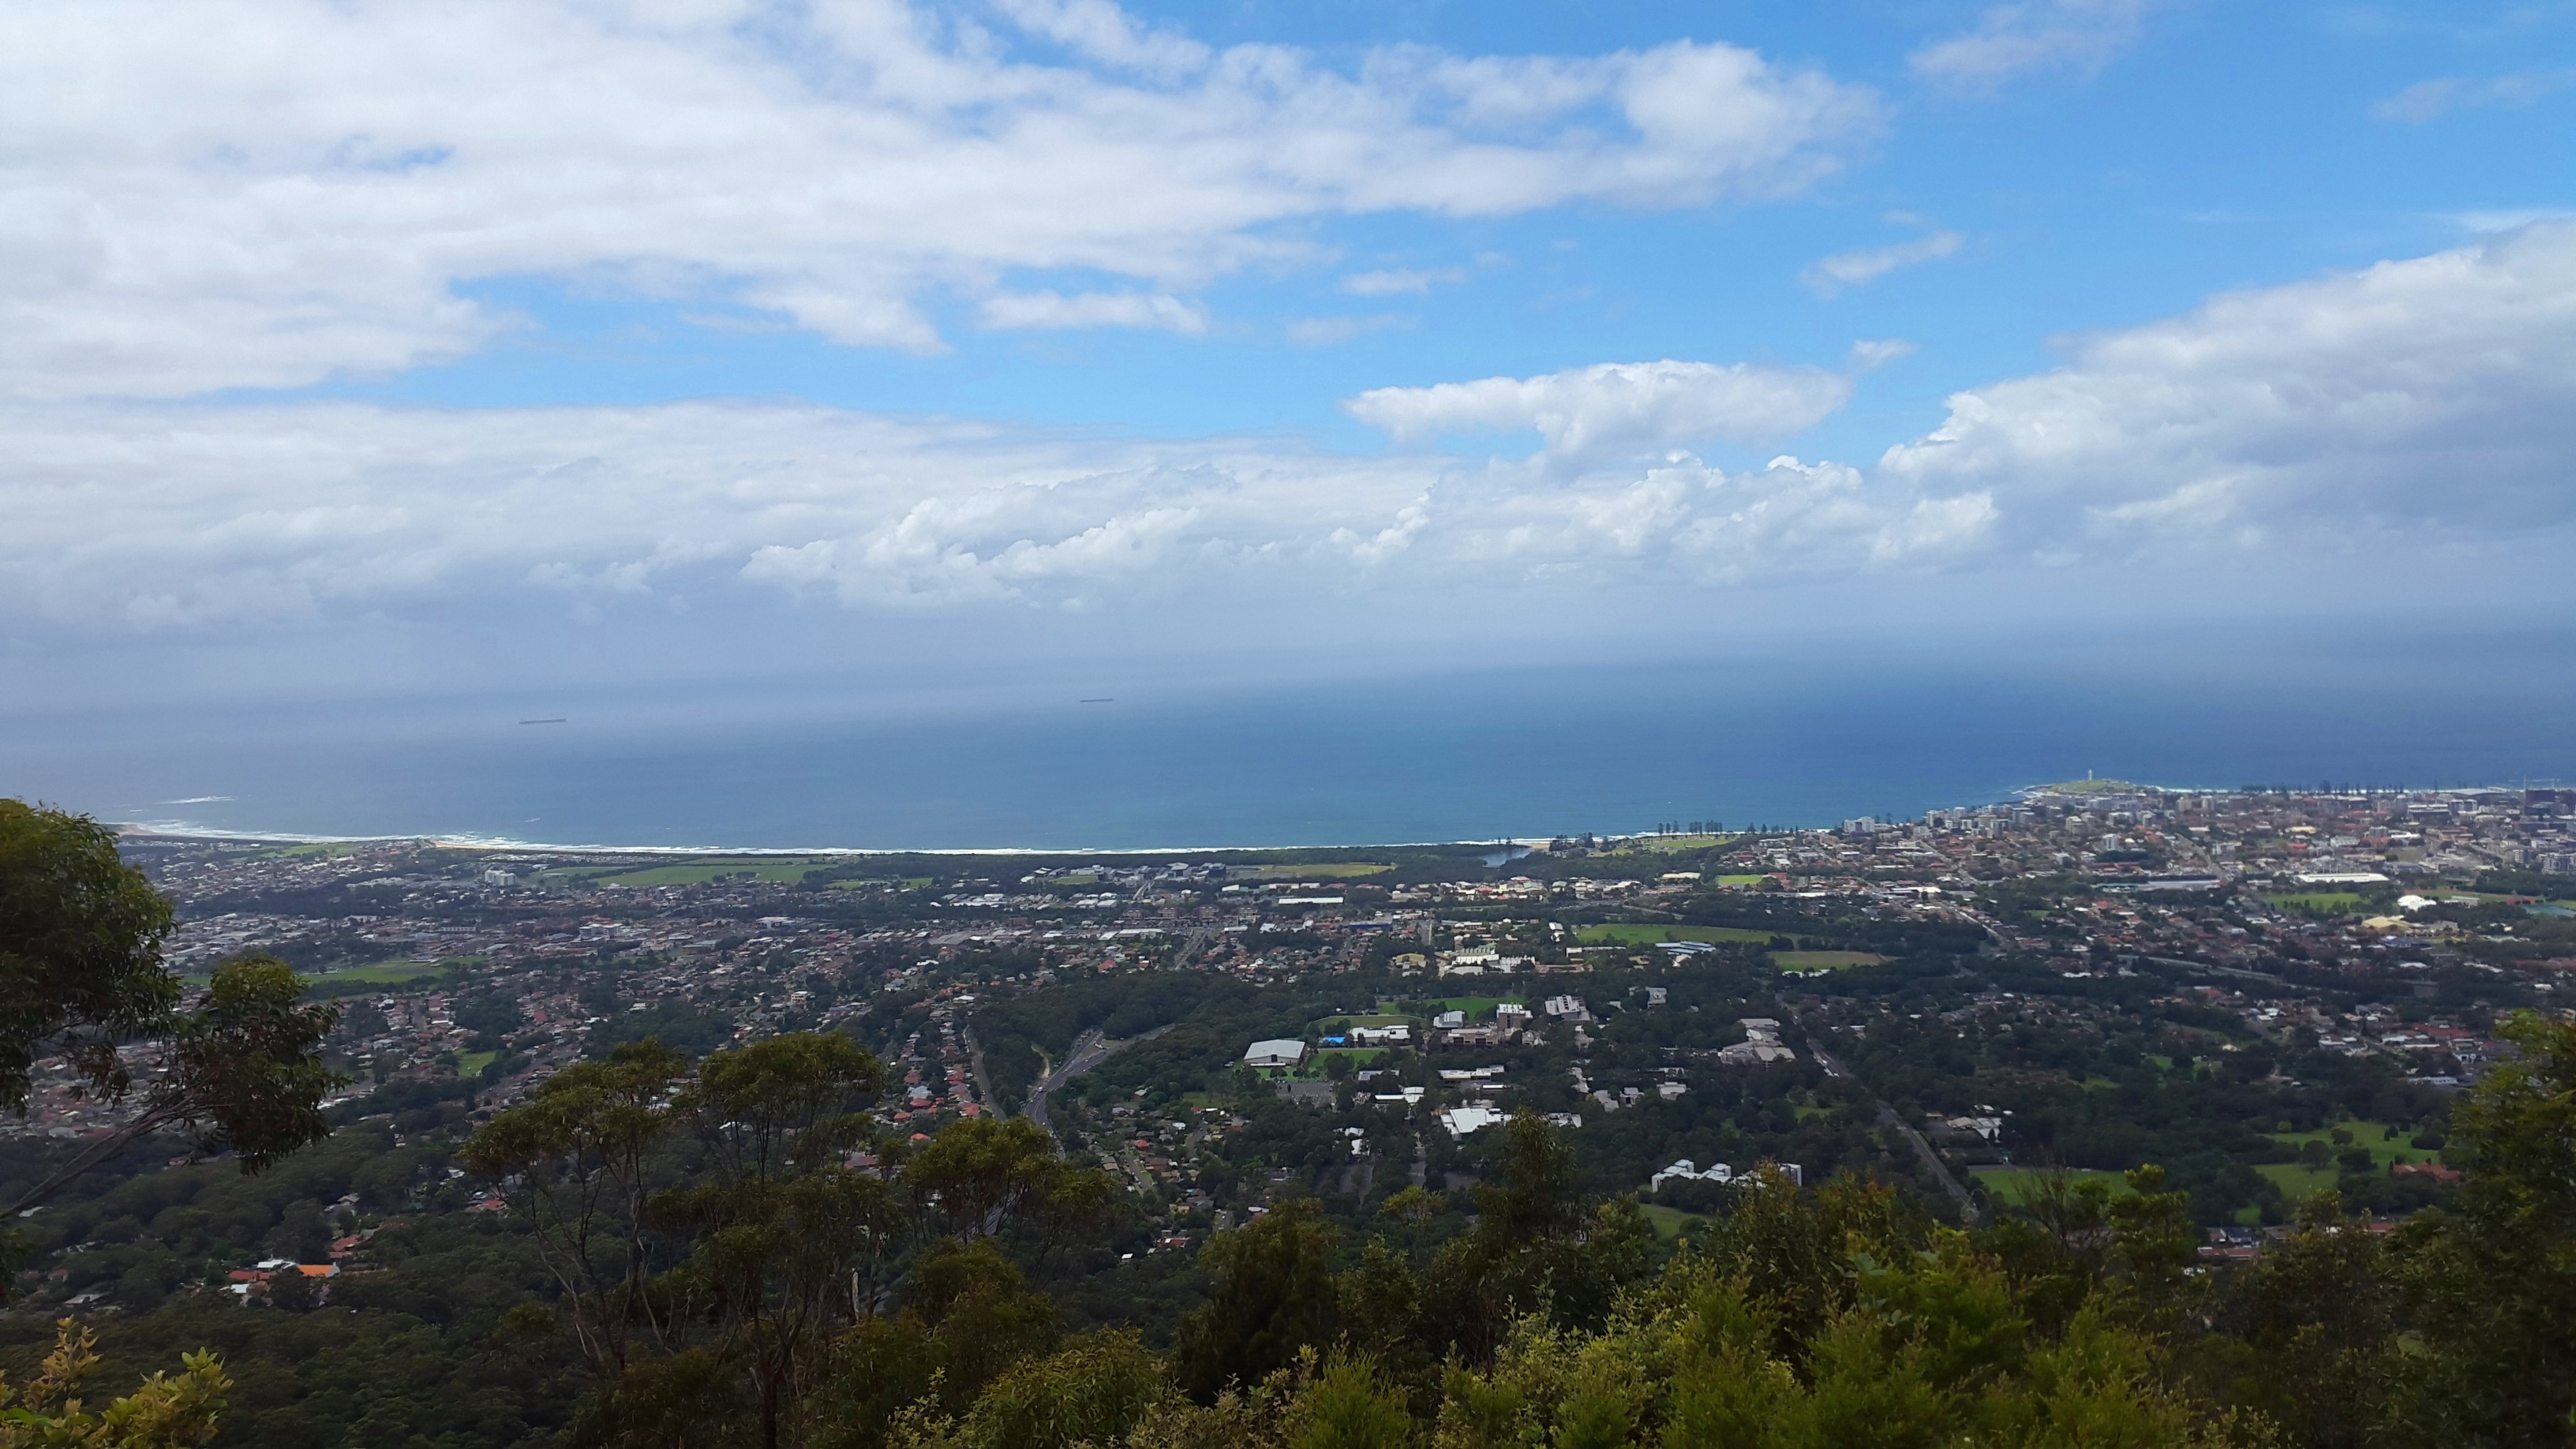 mount keira lookout - photo #6